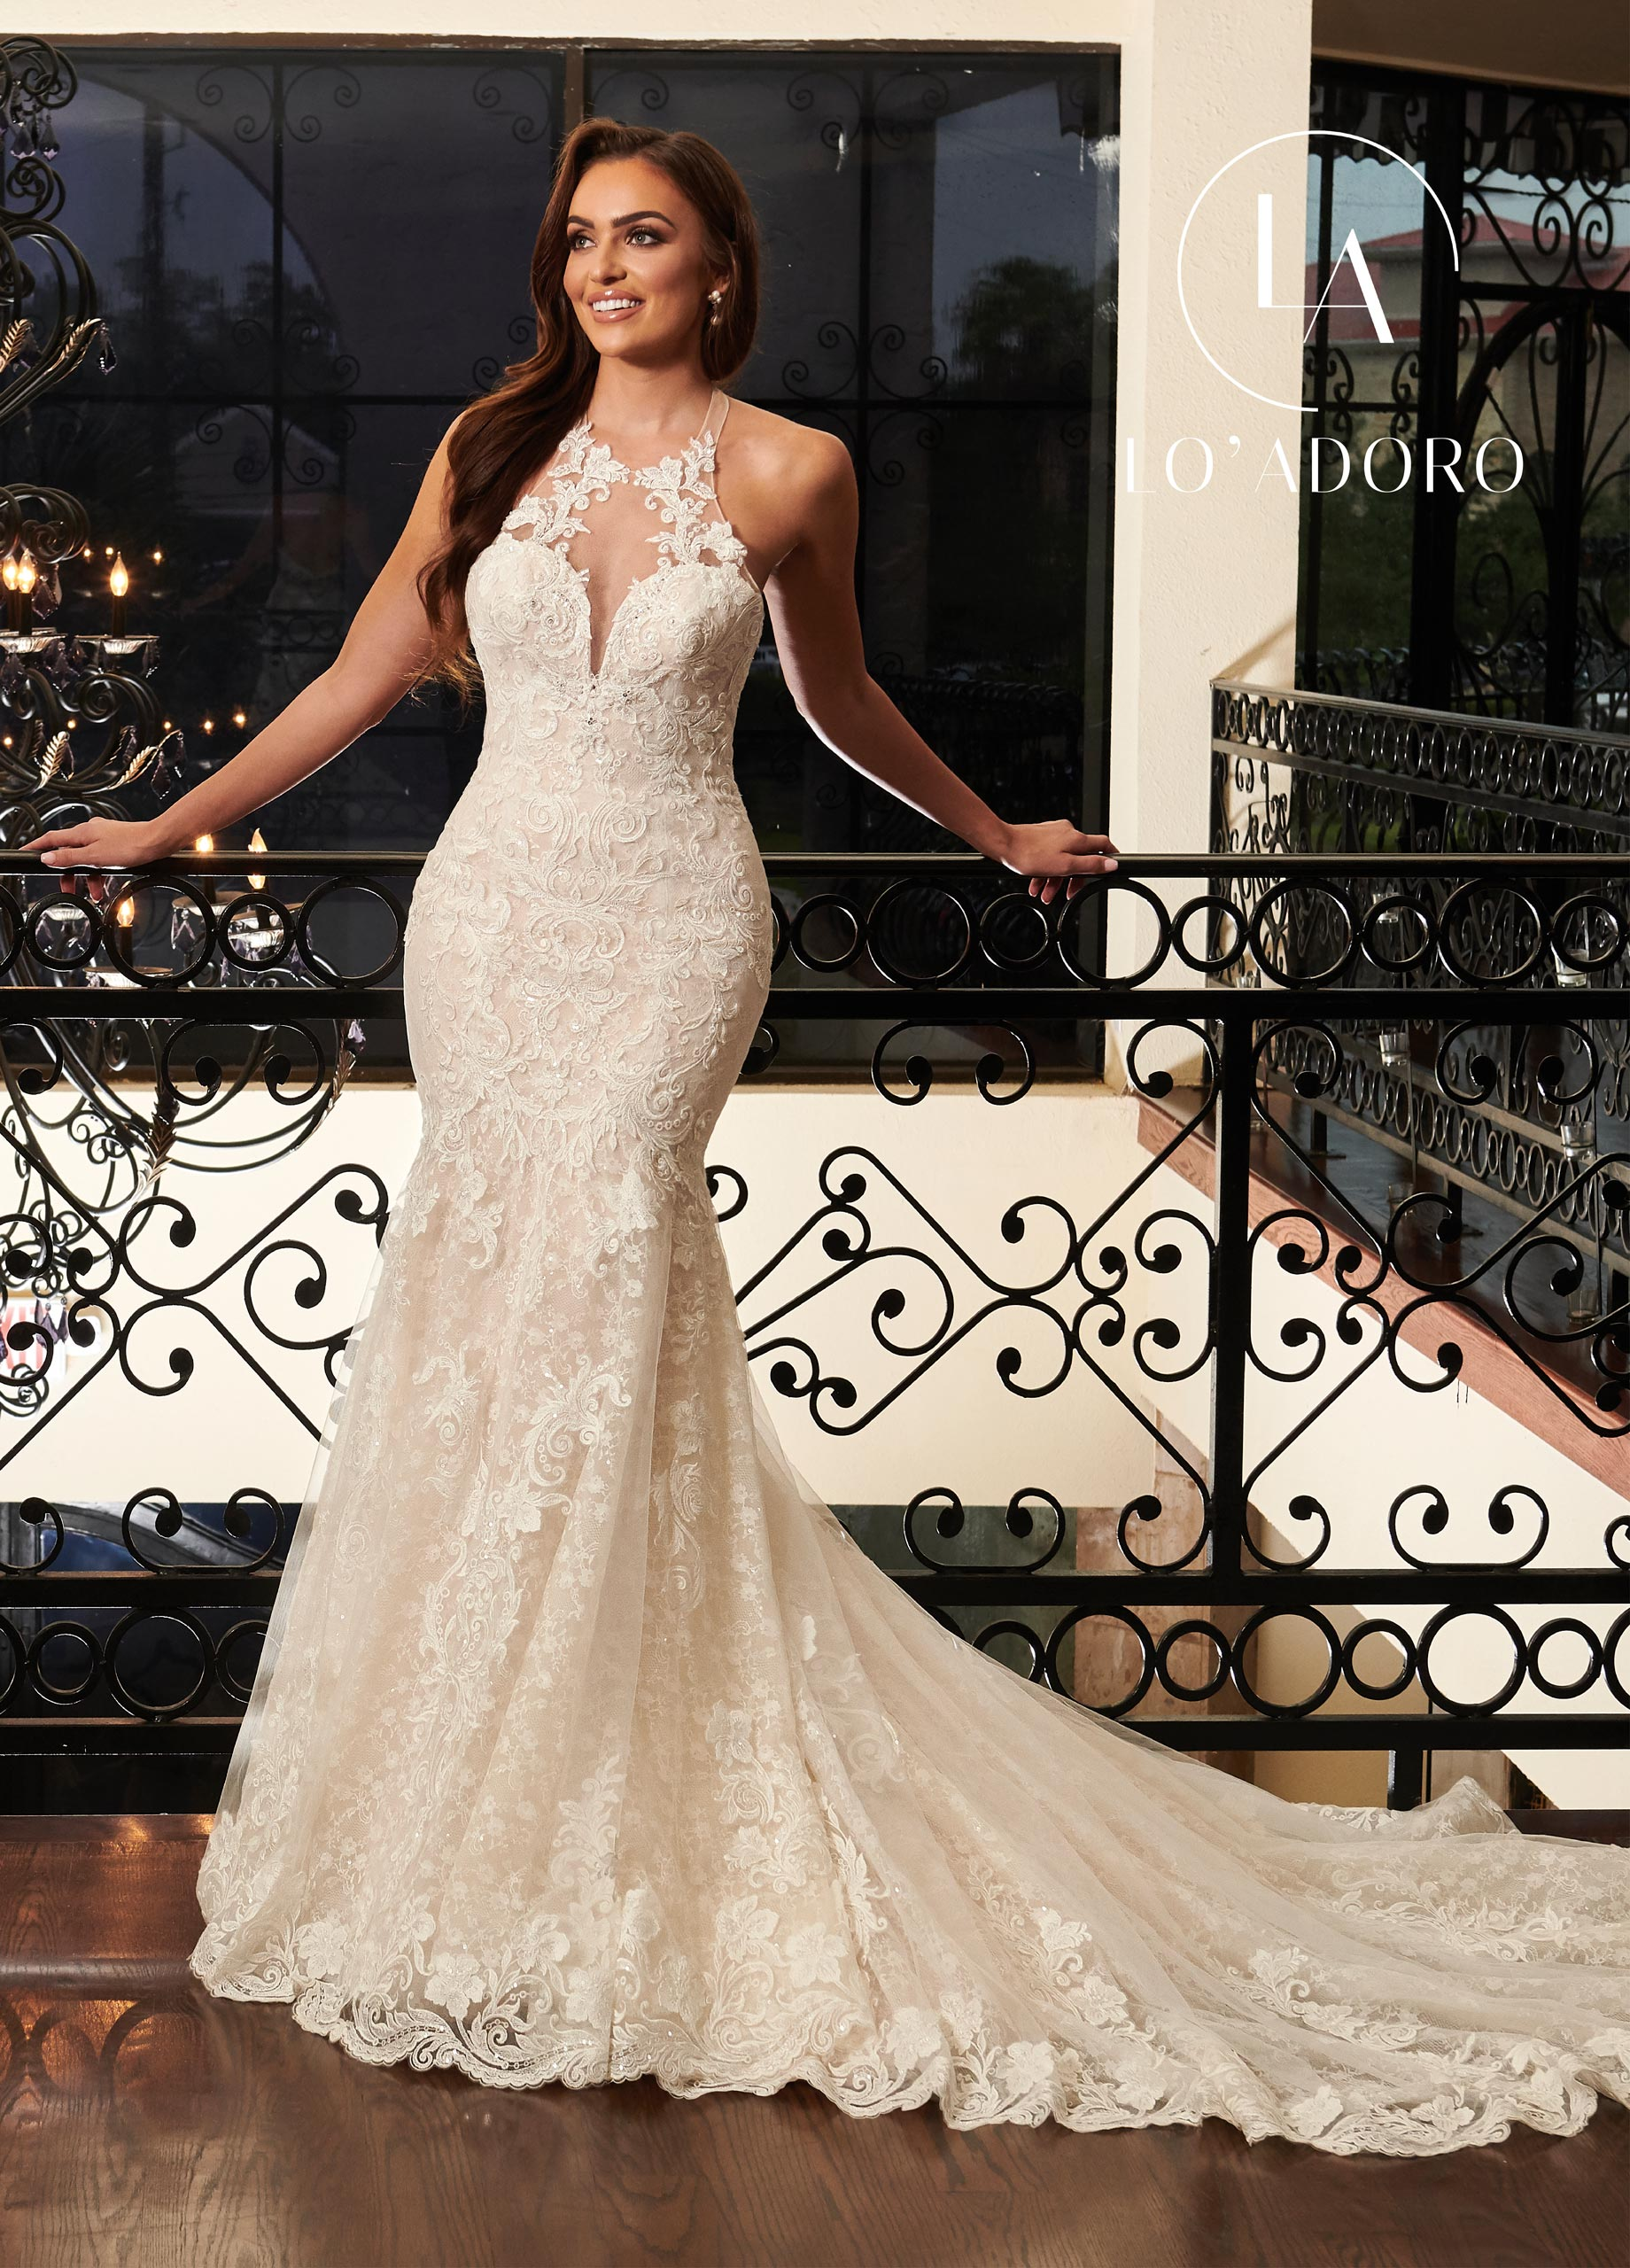 Halter Fit & Flare Lo' Adoro Bridal in White Color